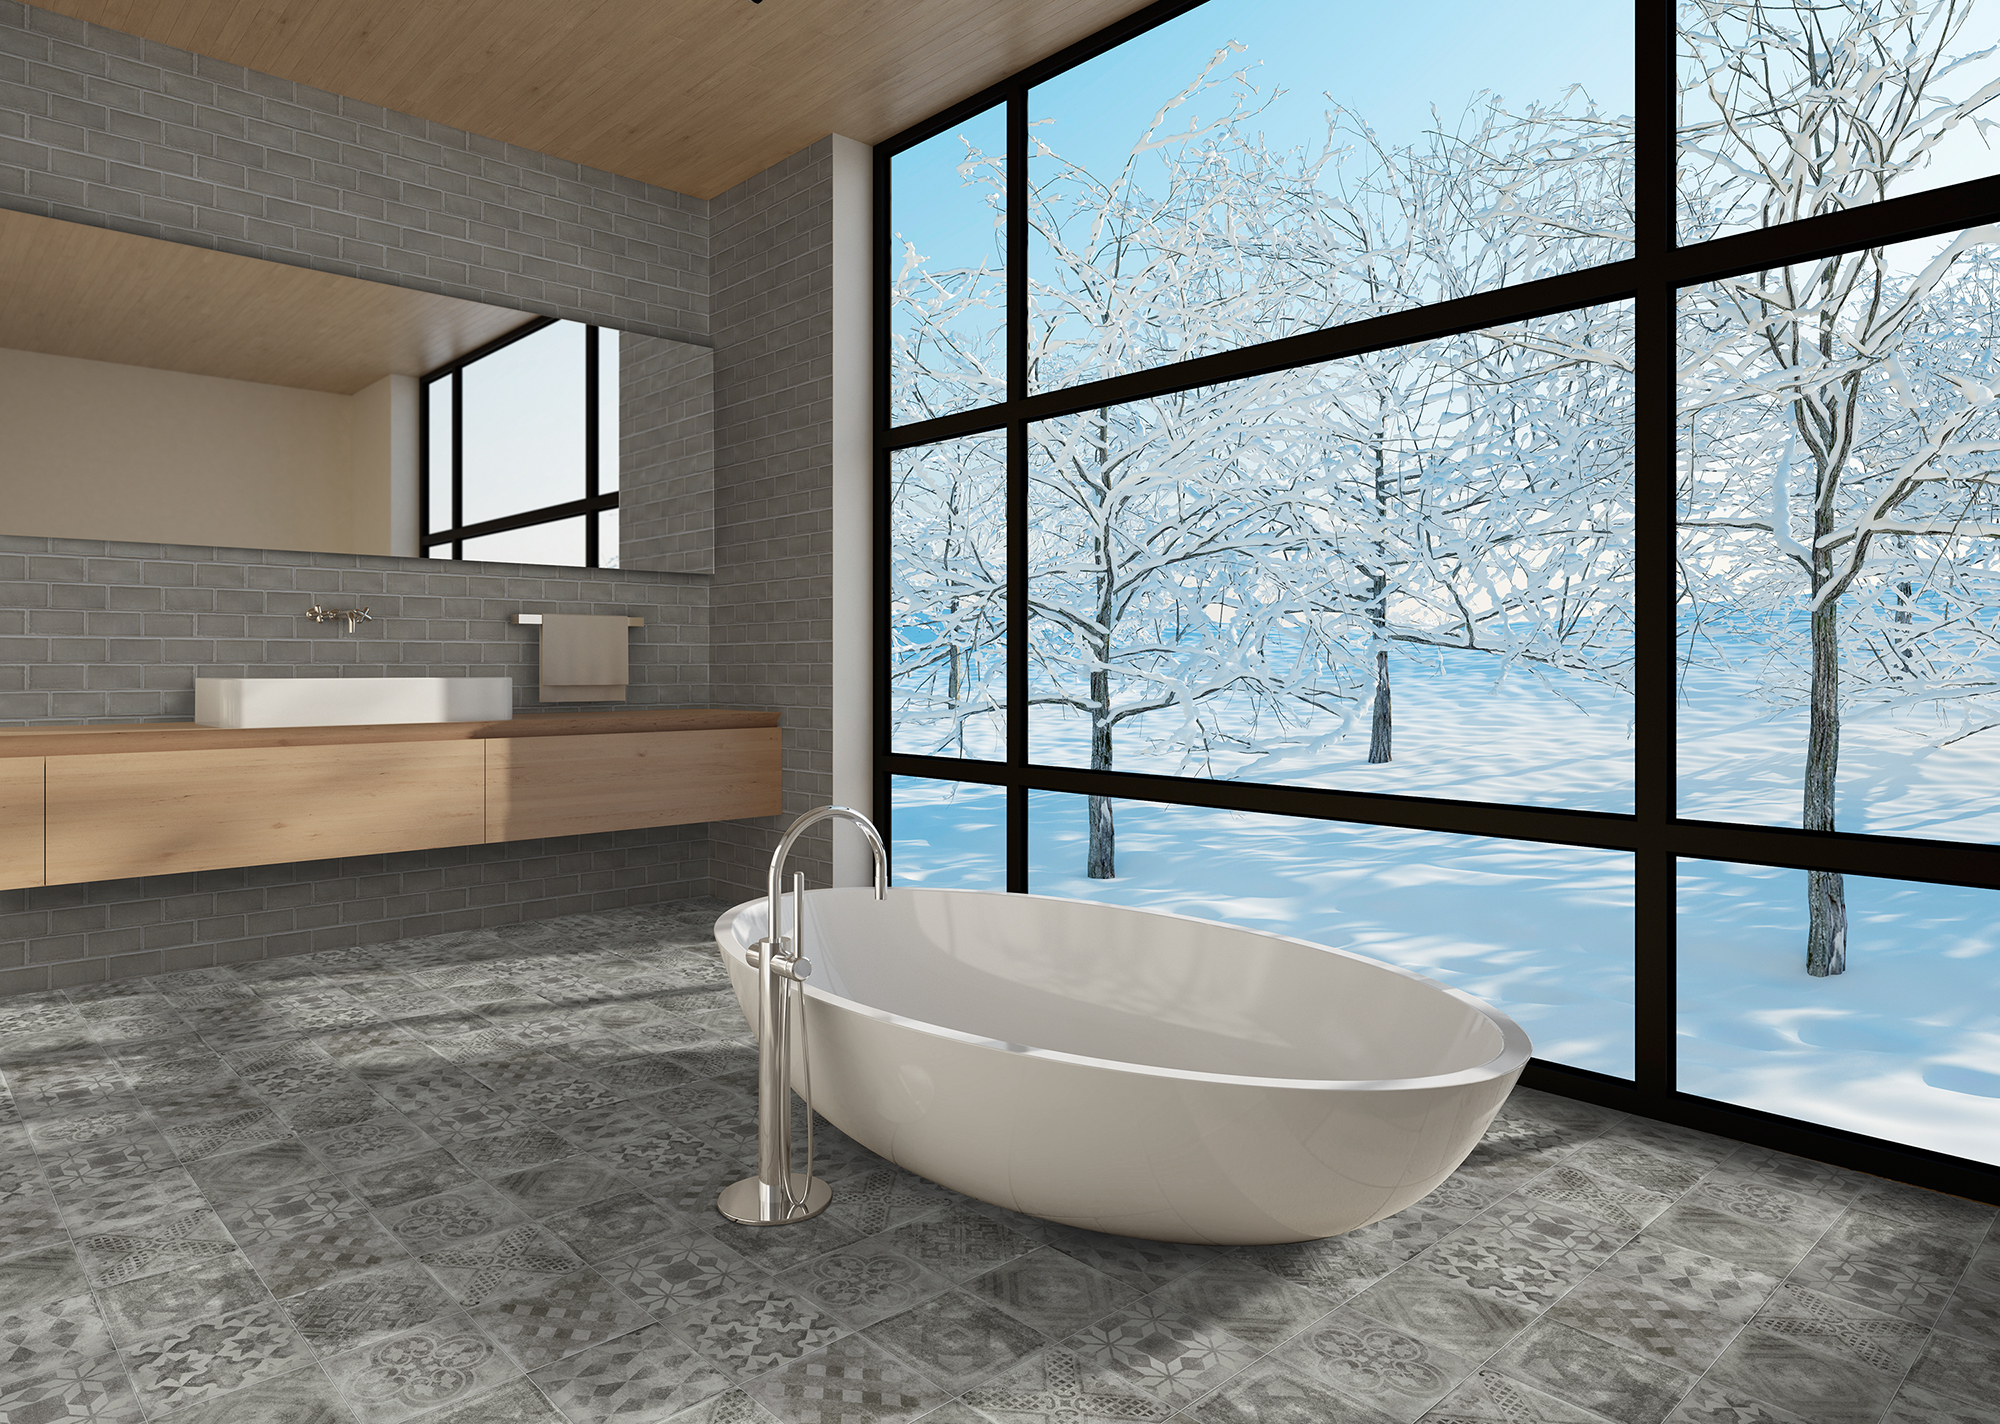 2015 April | Grestec Tiles : Tile Supplier to architects, trade and ...